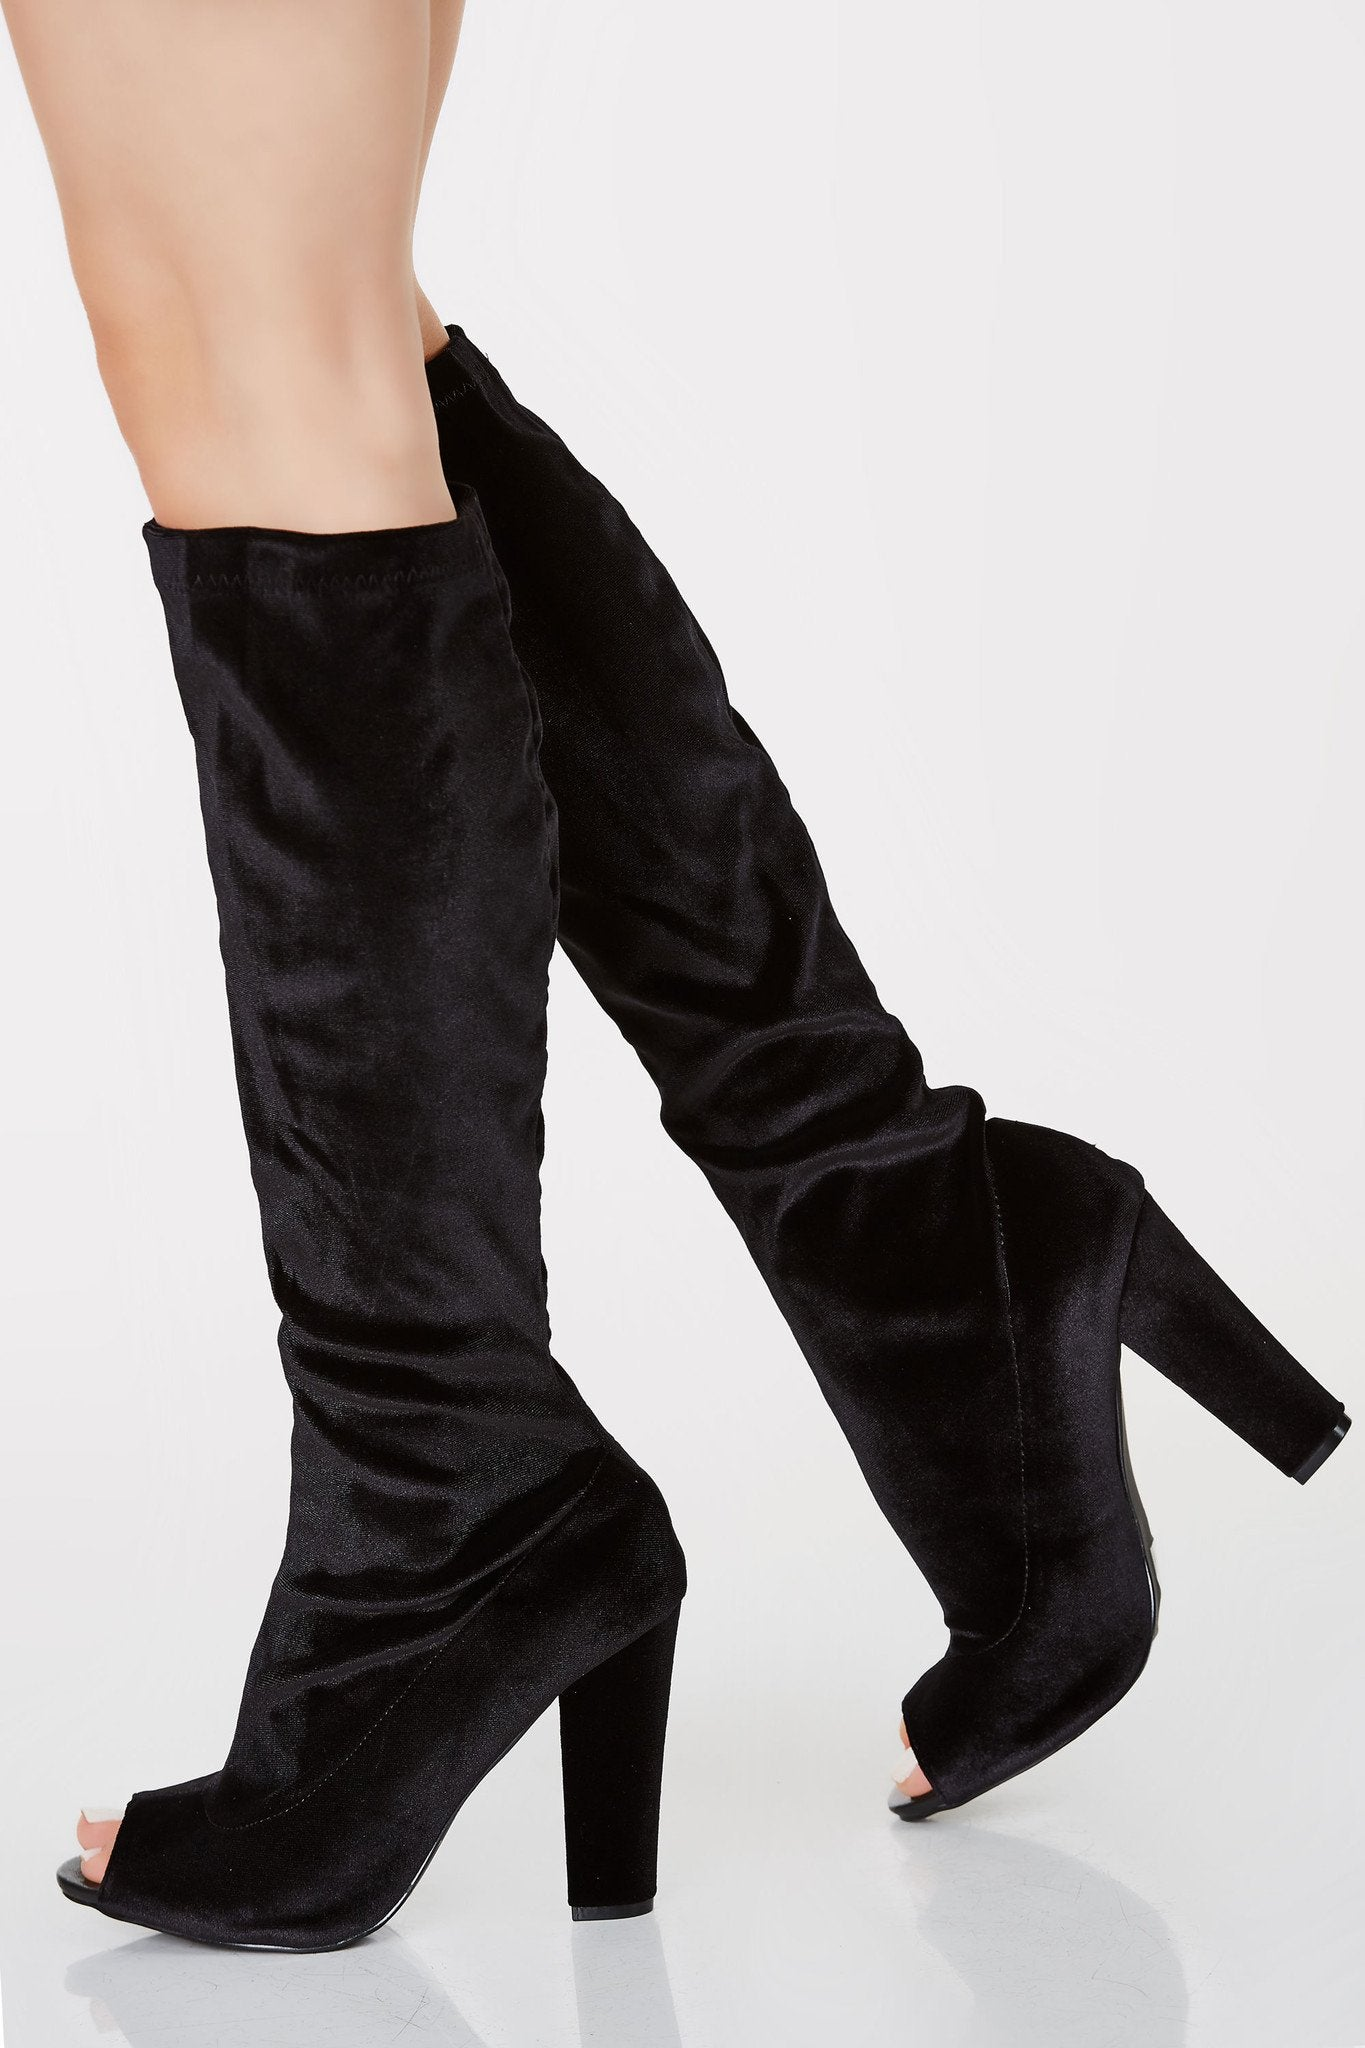 Velvet finish peep toe boots that hits below the knee. Chunky heels with stretchy fit.